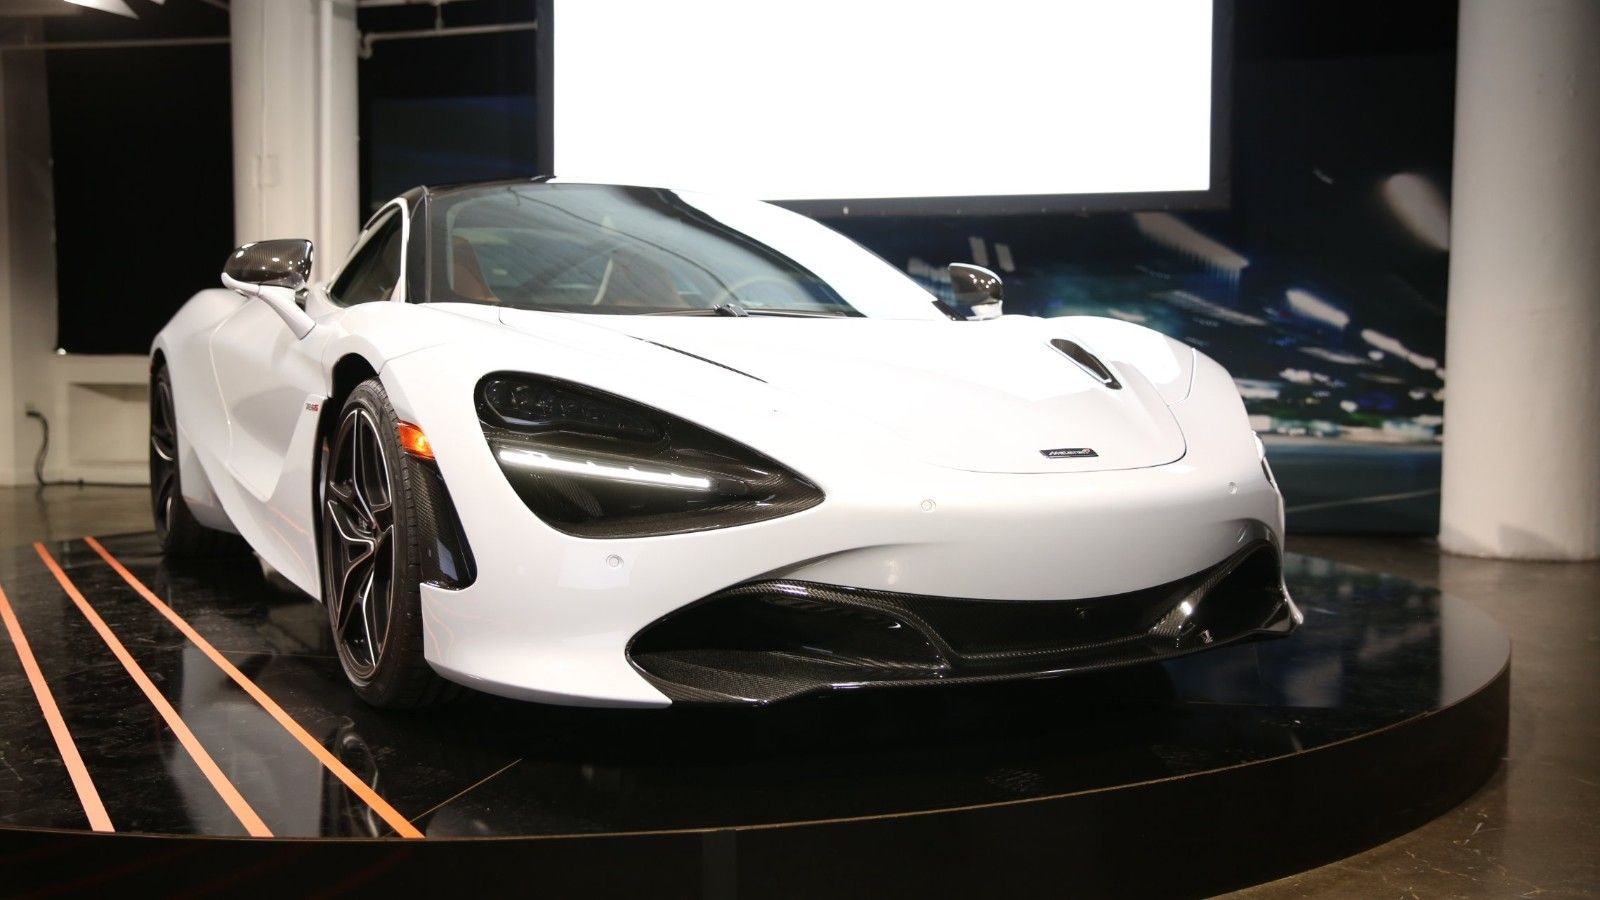 Mclaren 720s White Wallpapers High Resolution in 2020 ...